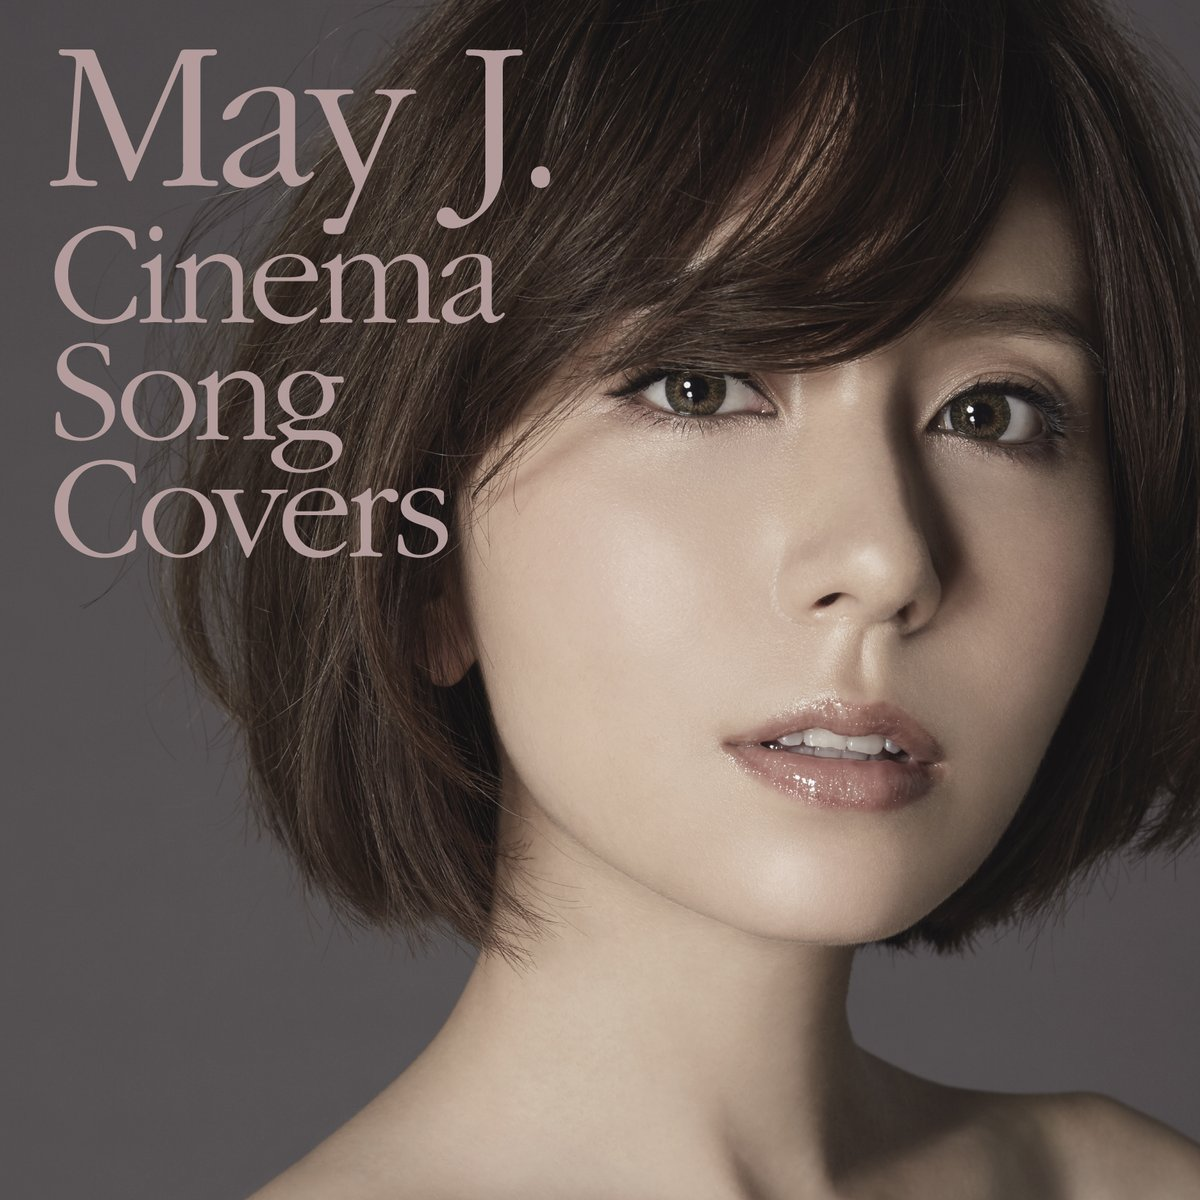 20181110.0809.04 May J. - Cinema Song Covers cover 2.jpg